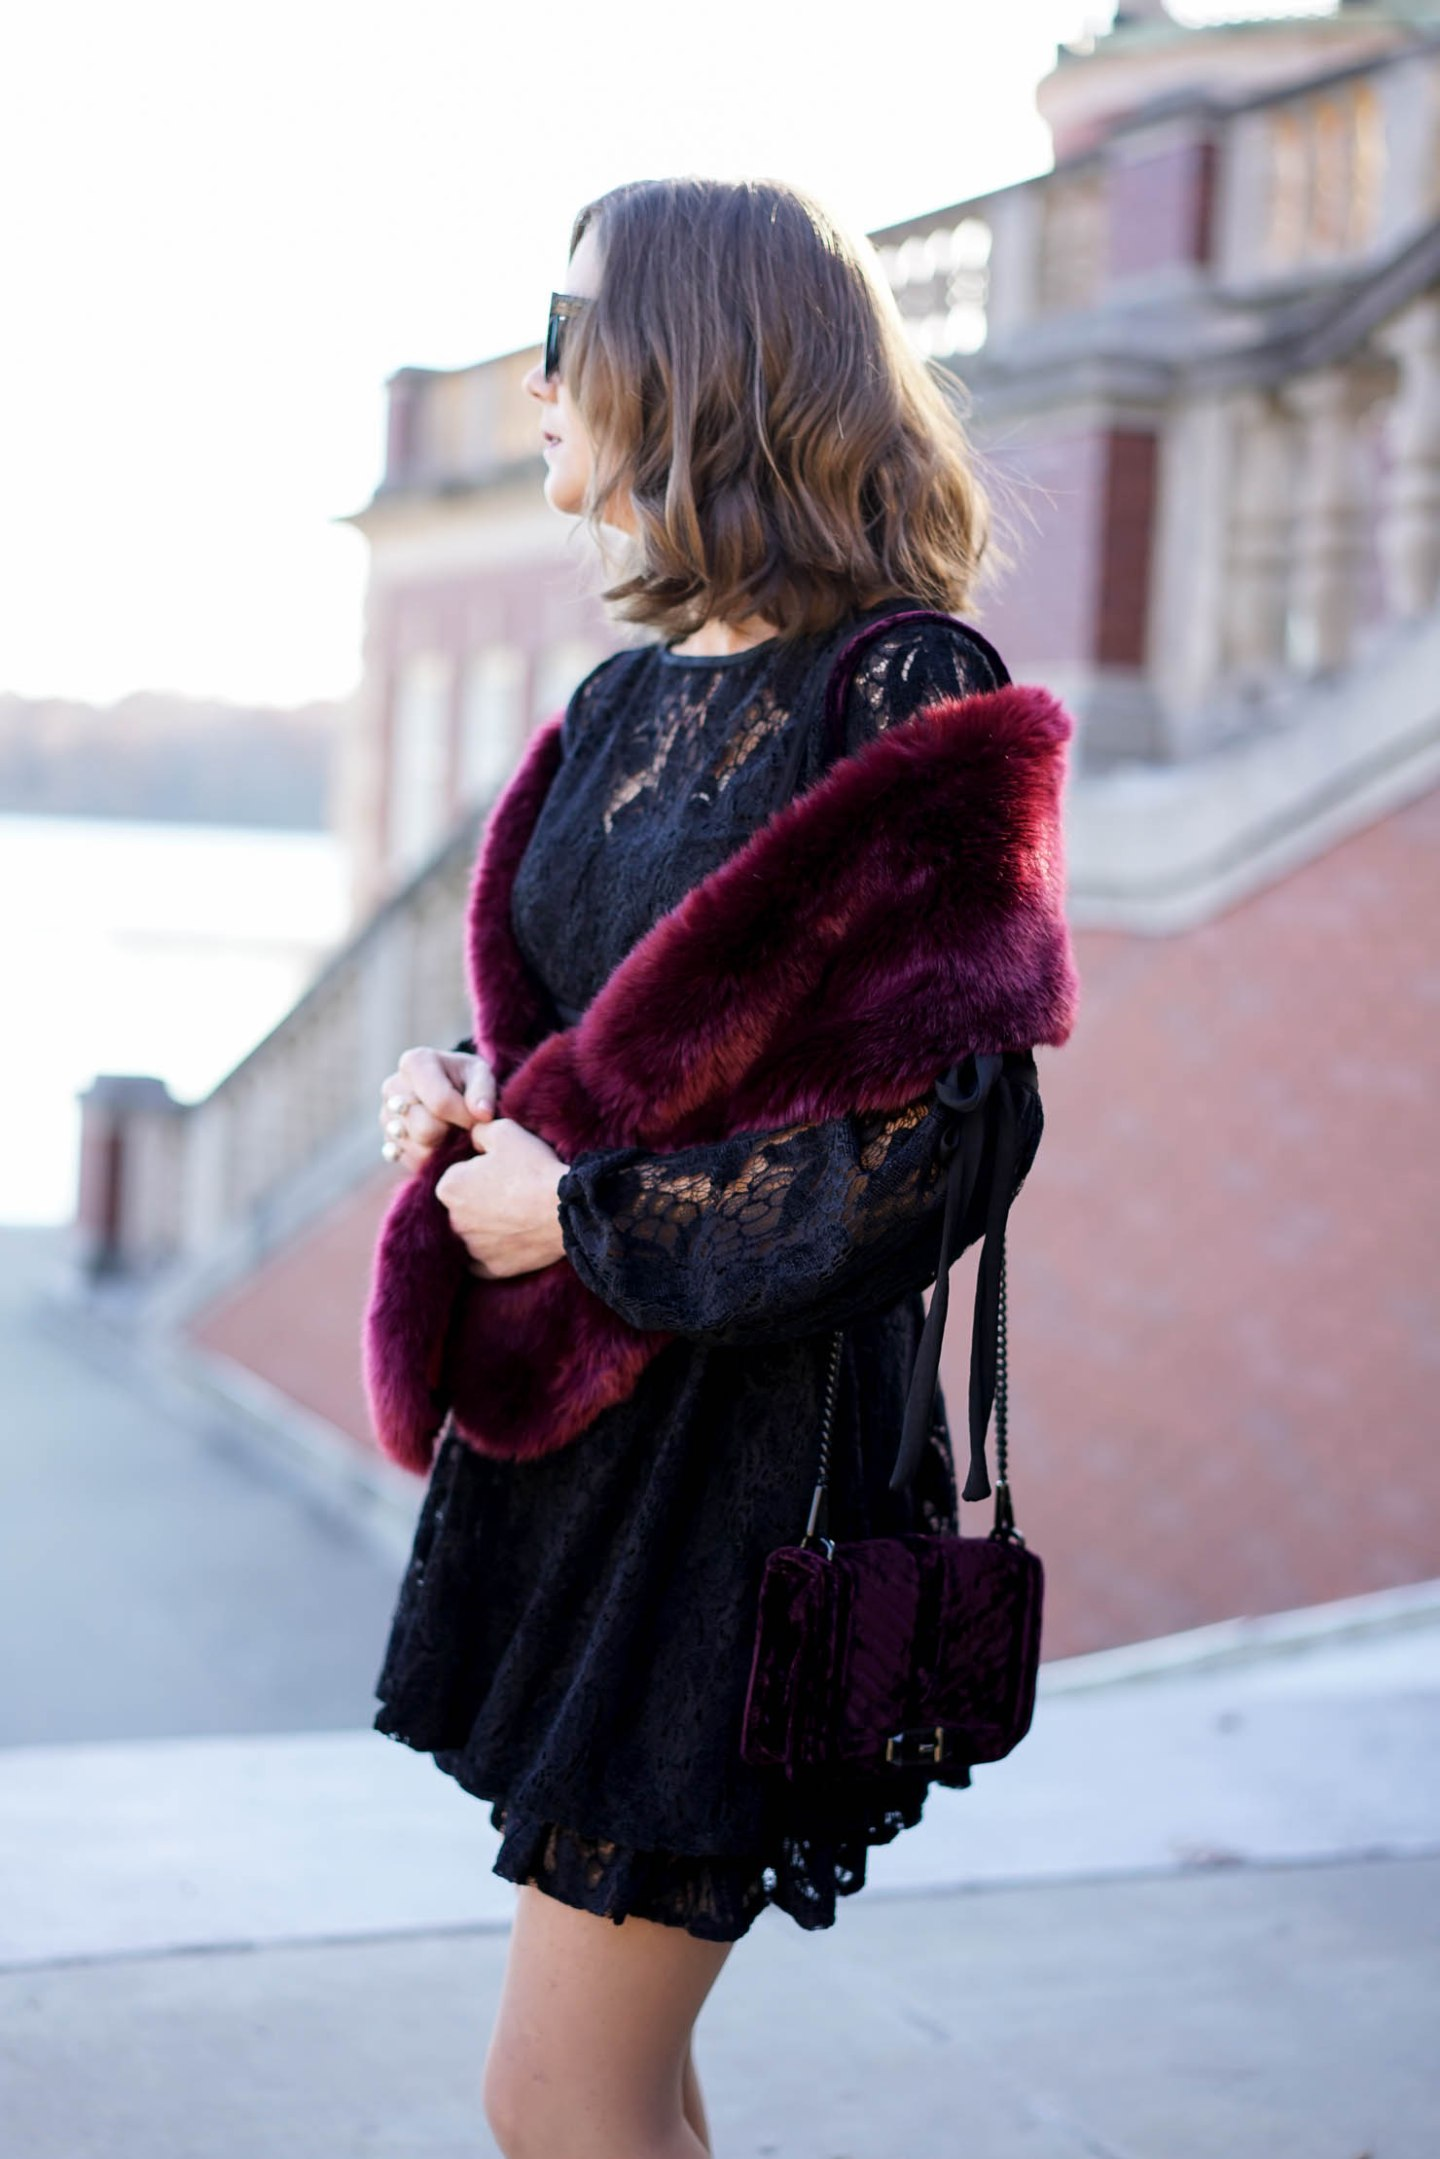 Free-People-black-lace-mini-dress-with-long-sleeves-holiday-outfit-dressy-holiday-lookburgundy-faux-fur-wrap-velvet-crossbody-mixing-lace-velvet-and-fur-textures